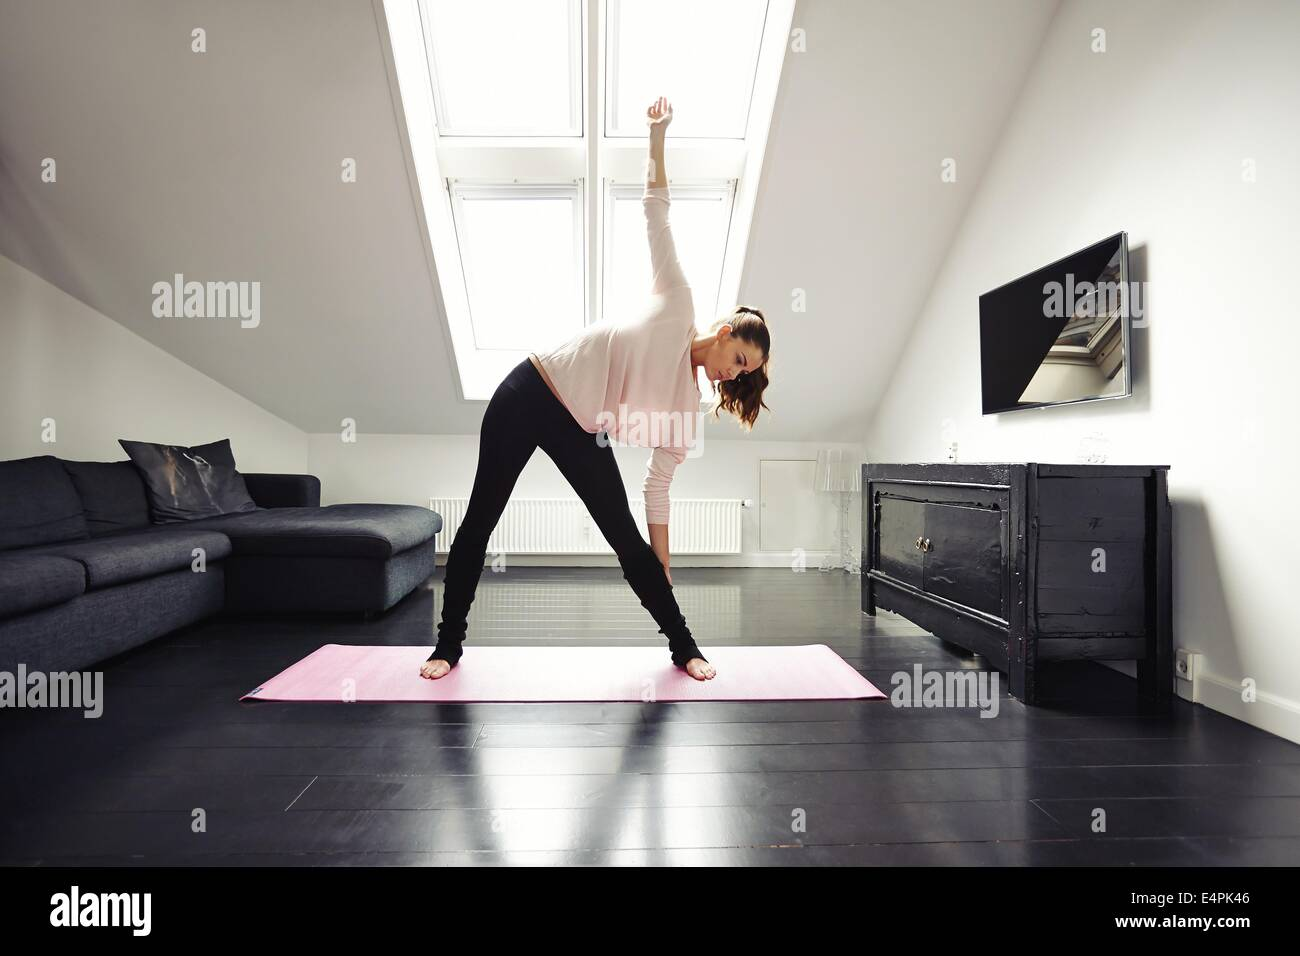 Fit young woman doing stretching exercise at her home. Healthy caucasian female model exercising in living room. - Stock Image